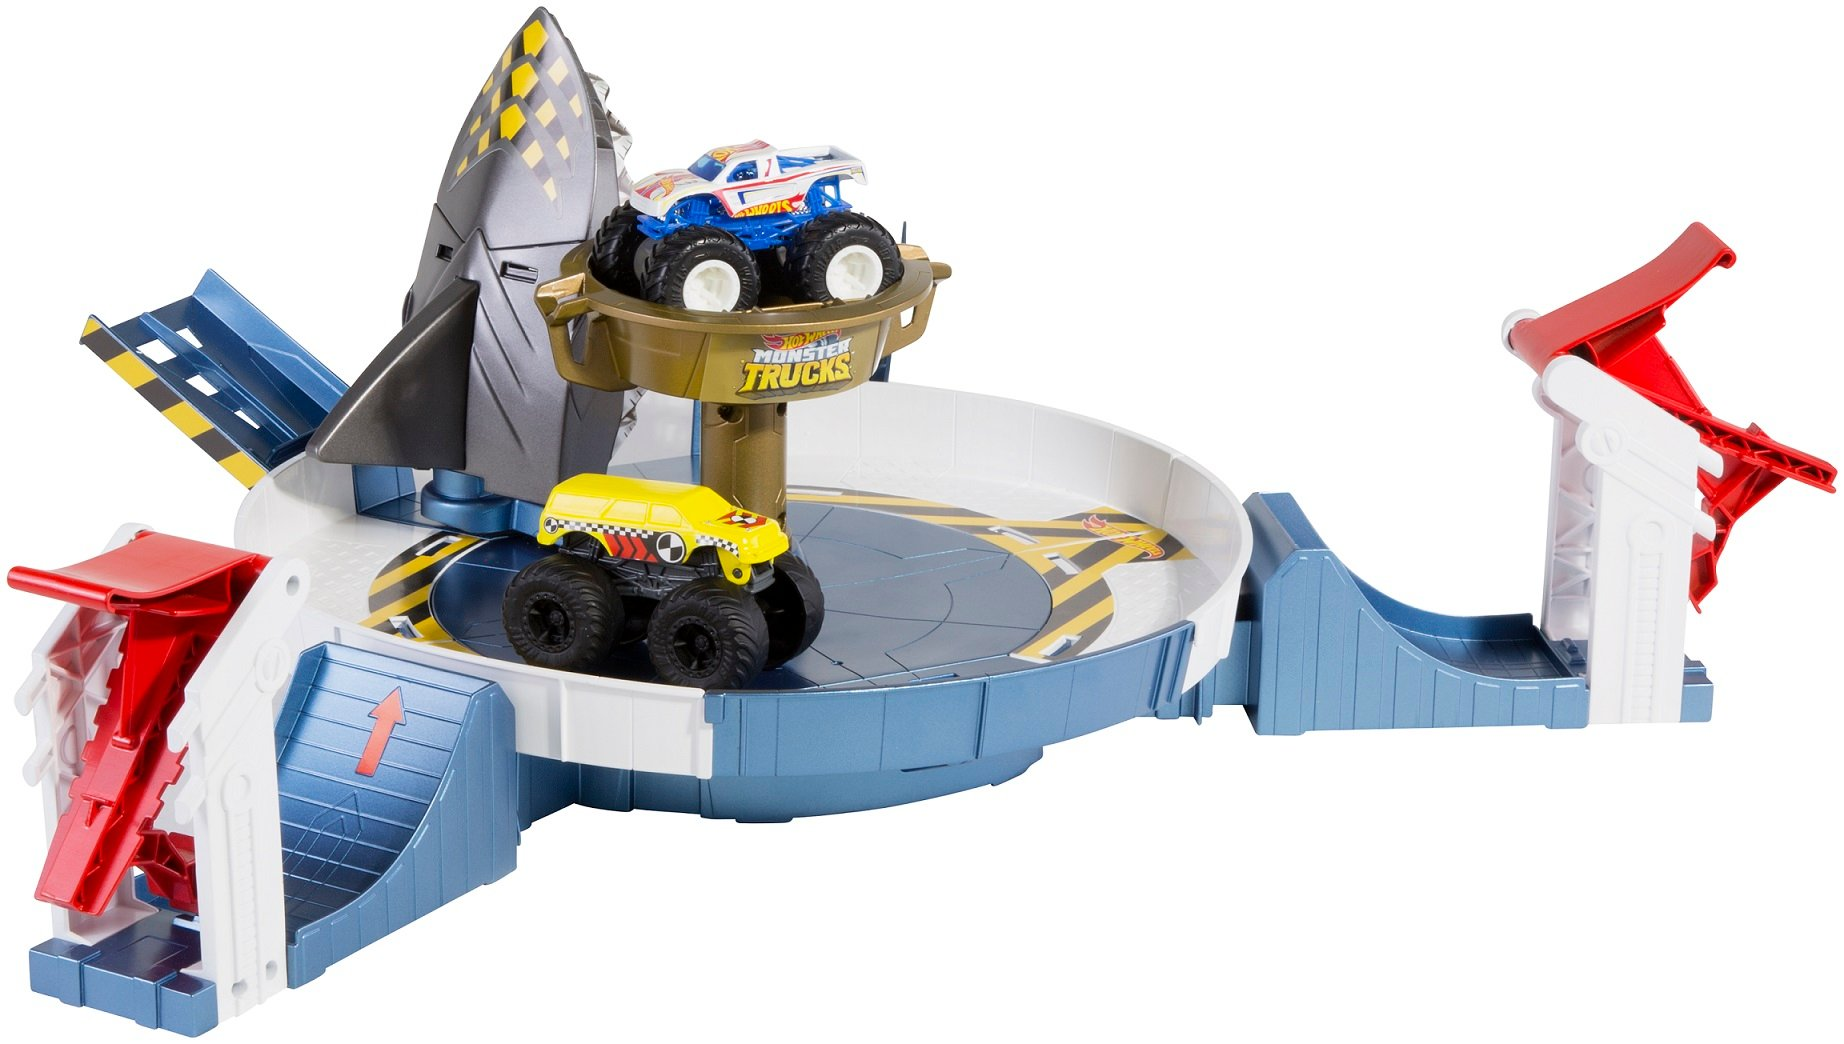 Set de joaca cu masina, Hot Wheels Monster Truck, Rechinul Furios